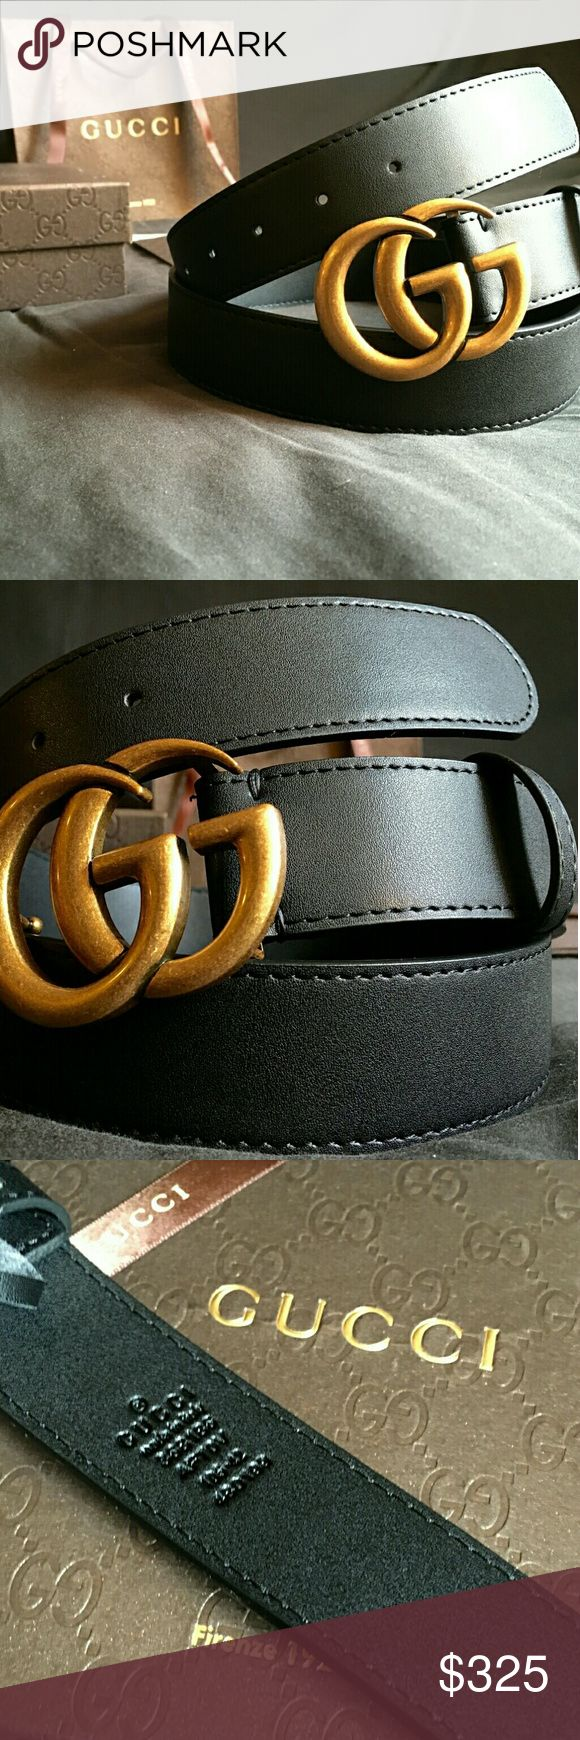 Gucci Double G Belt!!! Gucci Belt W/ Antique Brass Double G Buckle!!!  Brand New!!!  Unisex....For Man Or Woman!!!  Size Available - 32, 34, 36, 38, 40, 42!!!  Includes Gucci Belt, Gift Box, Dust Bag, Ribbon, Etc!!!  Great Gift Idea!!!  Last Available!!!  Check My Listings For Other Great Items!!!             Ignore: Gucci gg monogram casual dress belts men's women's guccissma leather monogram web tiger bee embossed panther wool cable knit blooms supreme print angry cat ufo dragon studded…